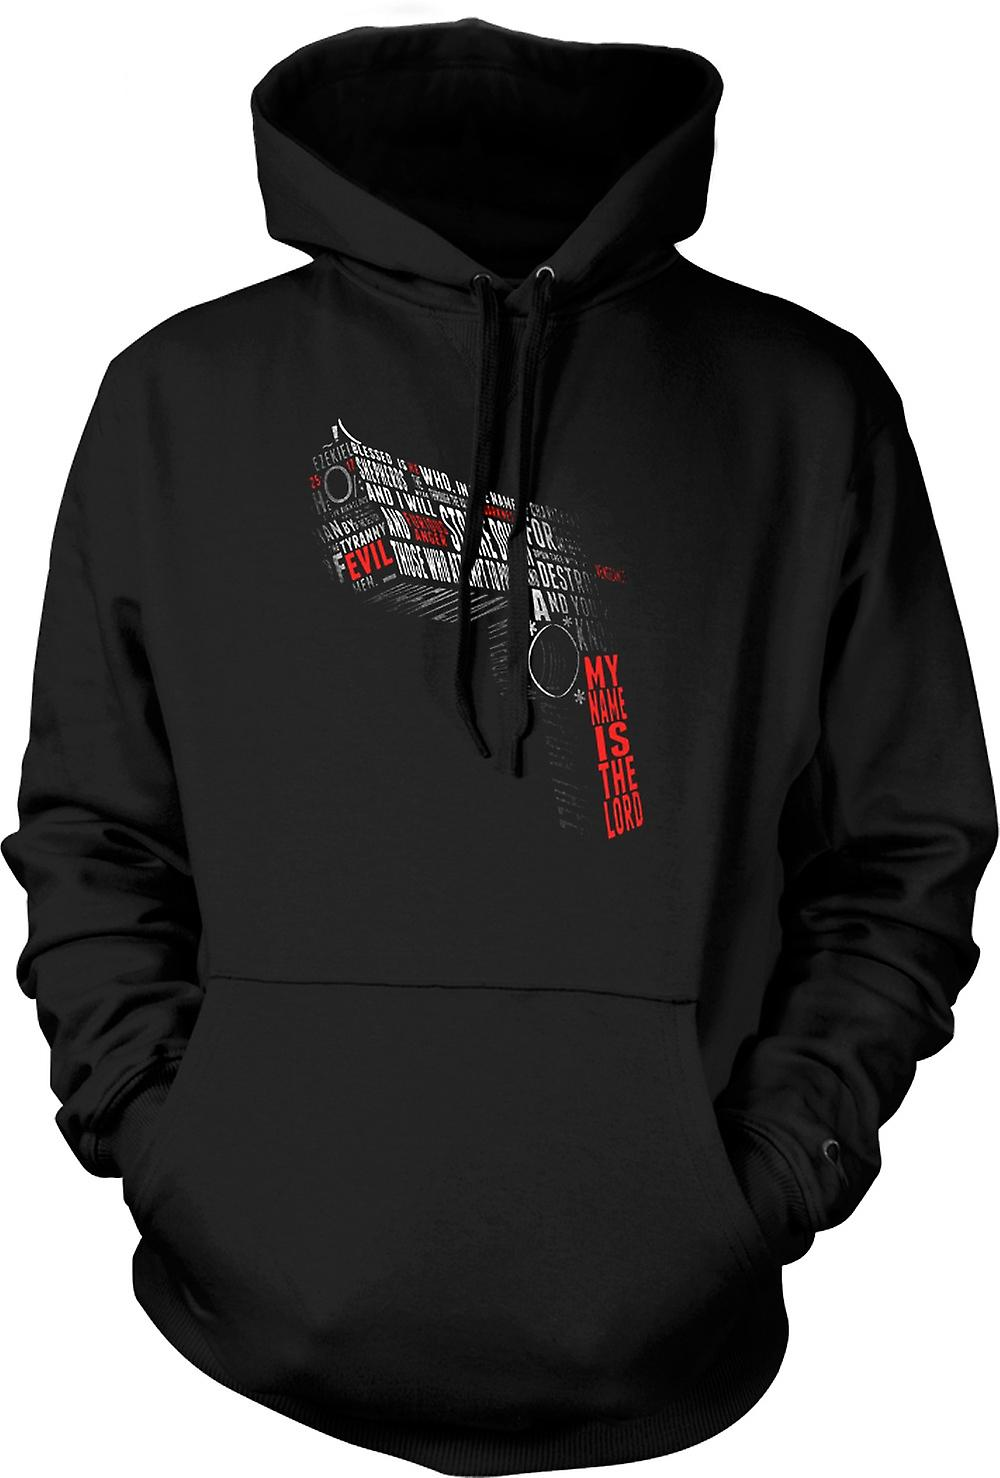 Mens Hoodie - Pulp Fiction - Citations - Gun Forme